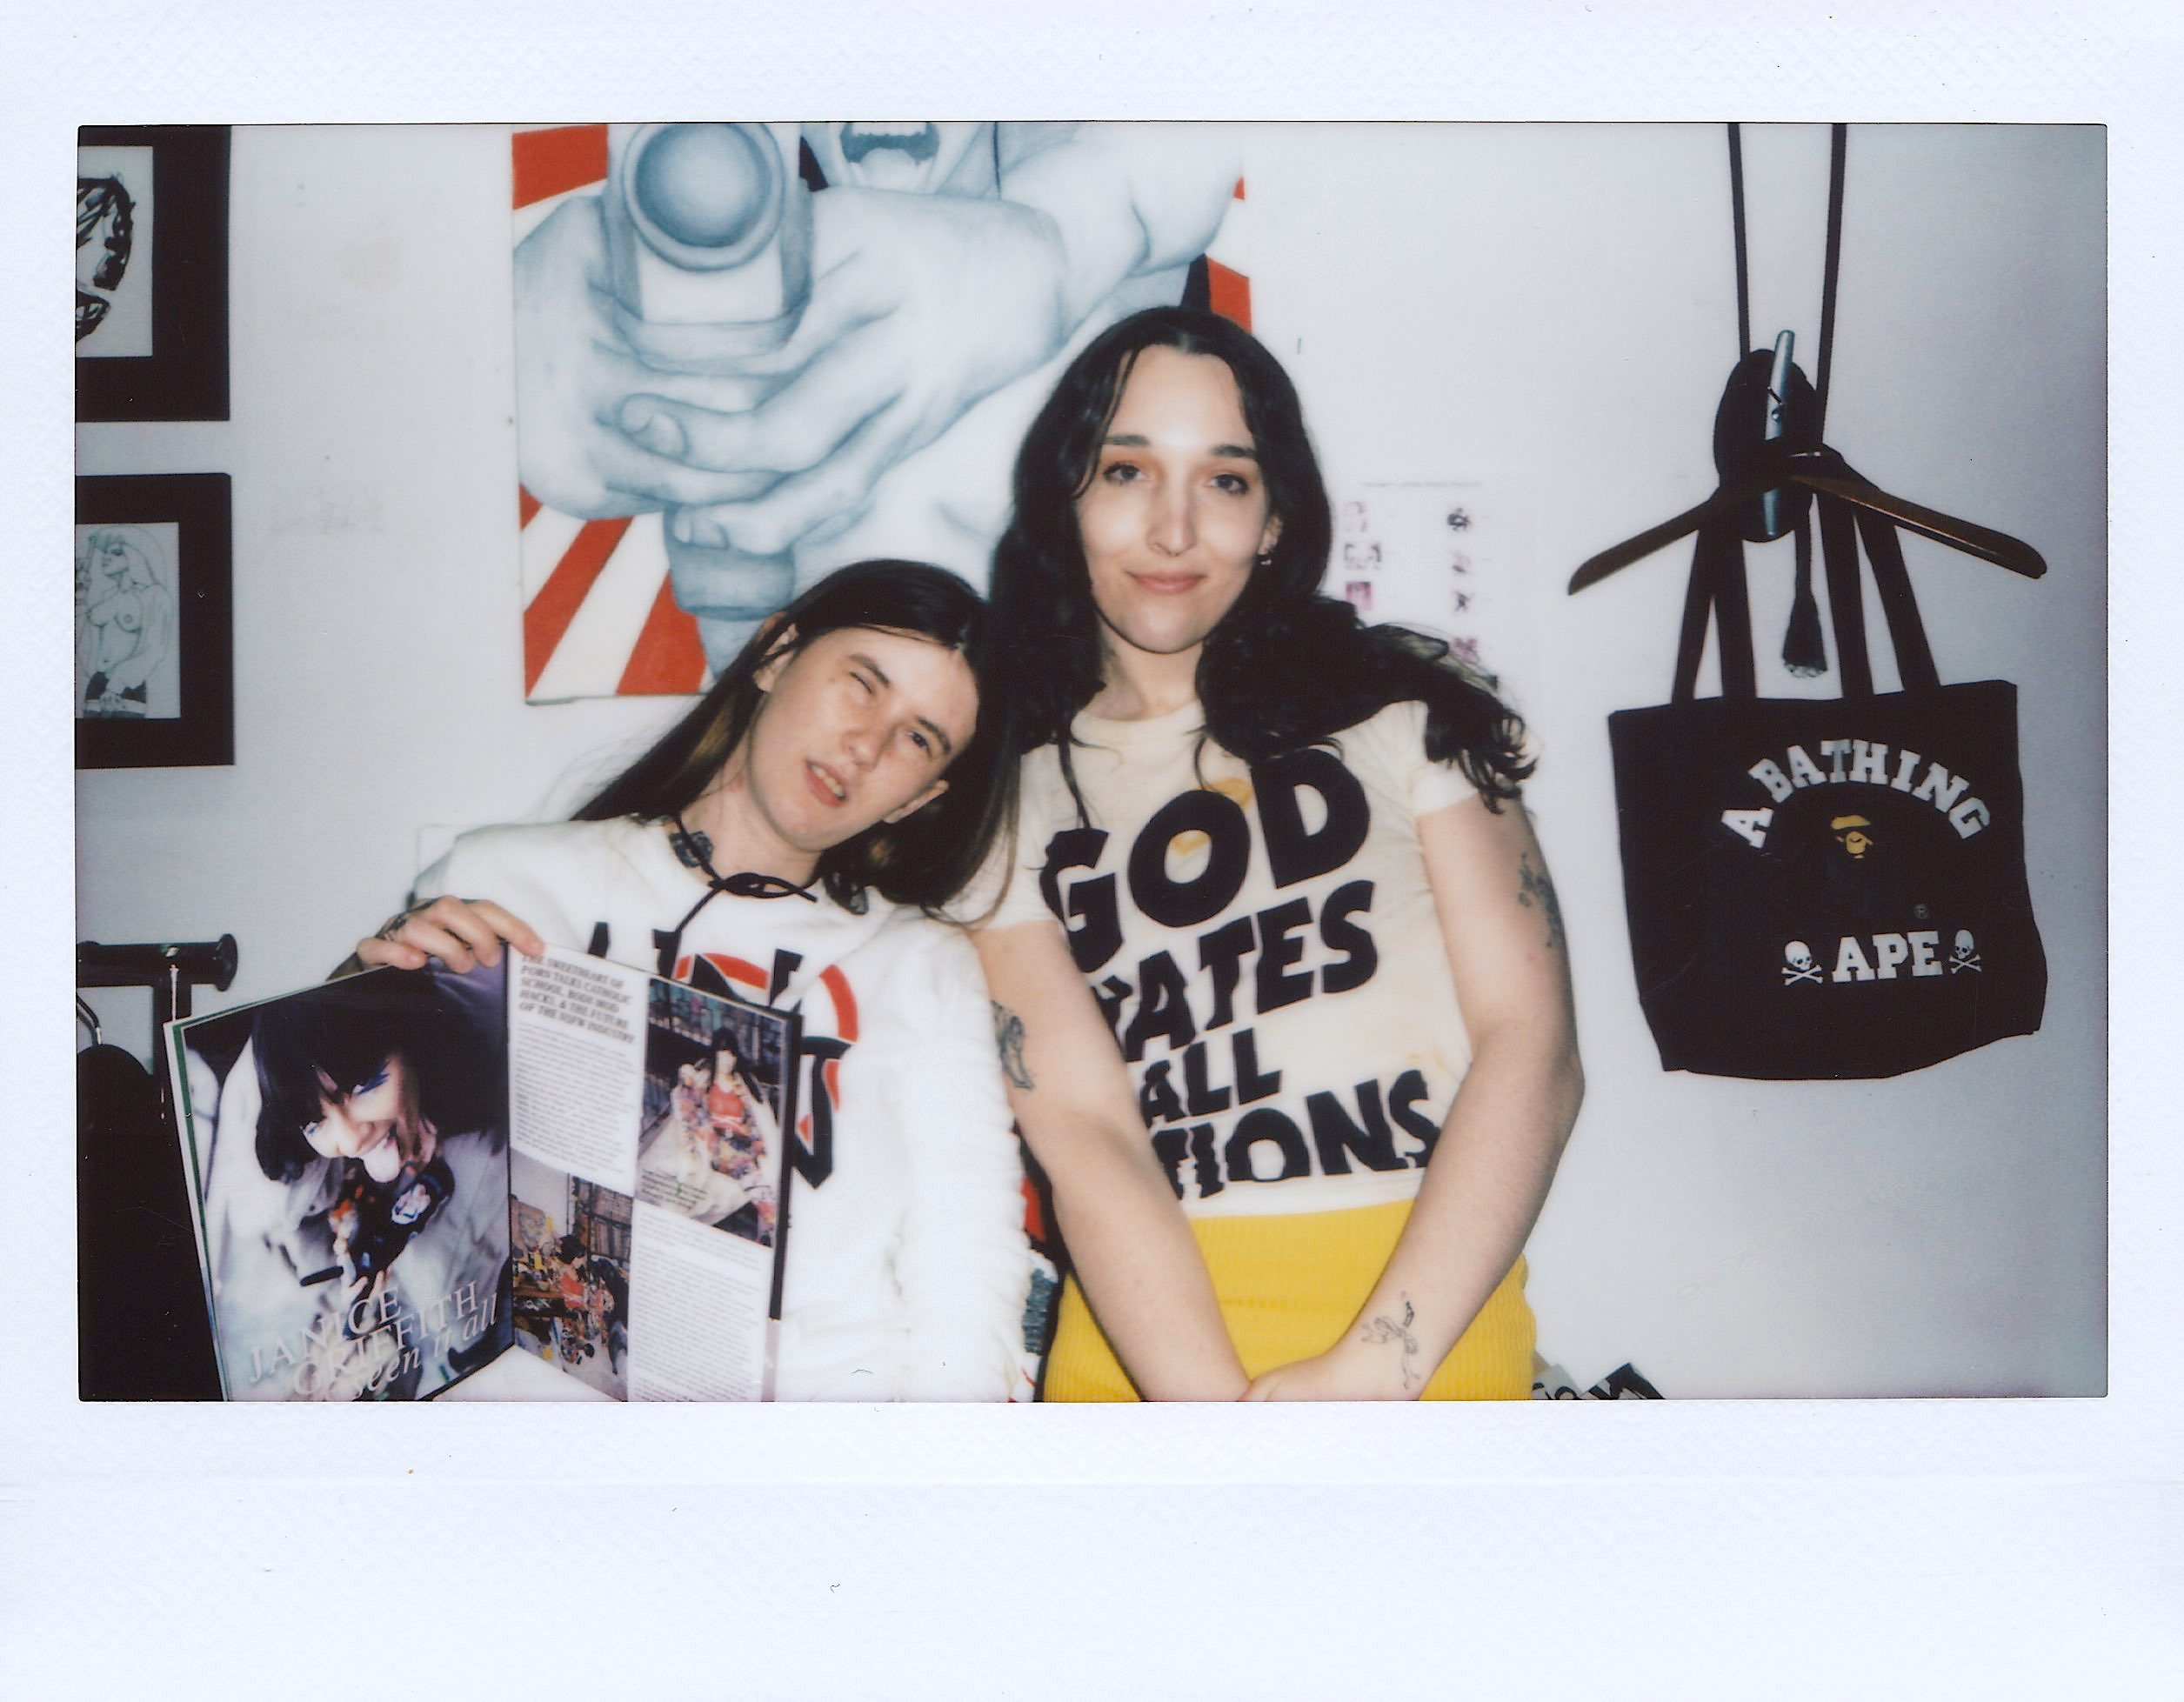 magdalena galen and ripley holding up dirty magazine and winking